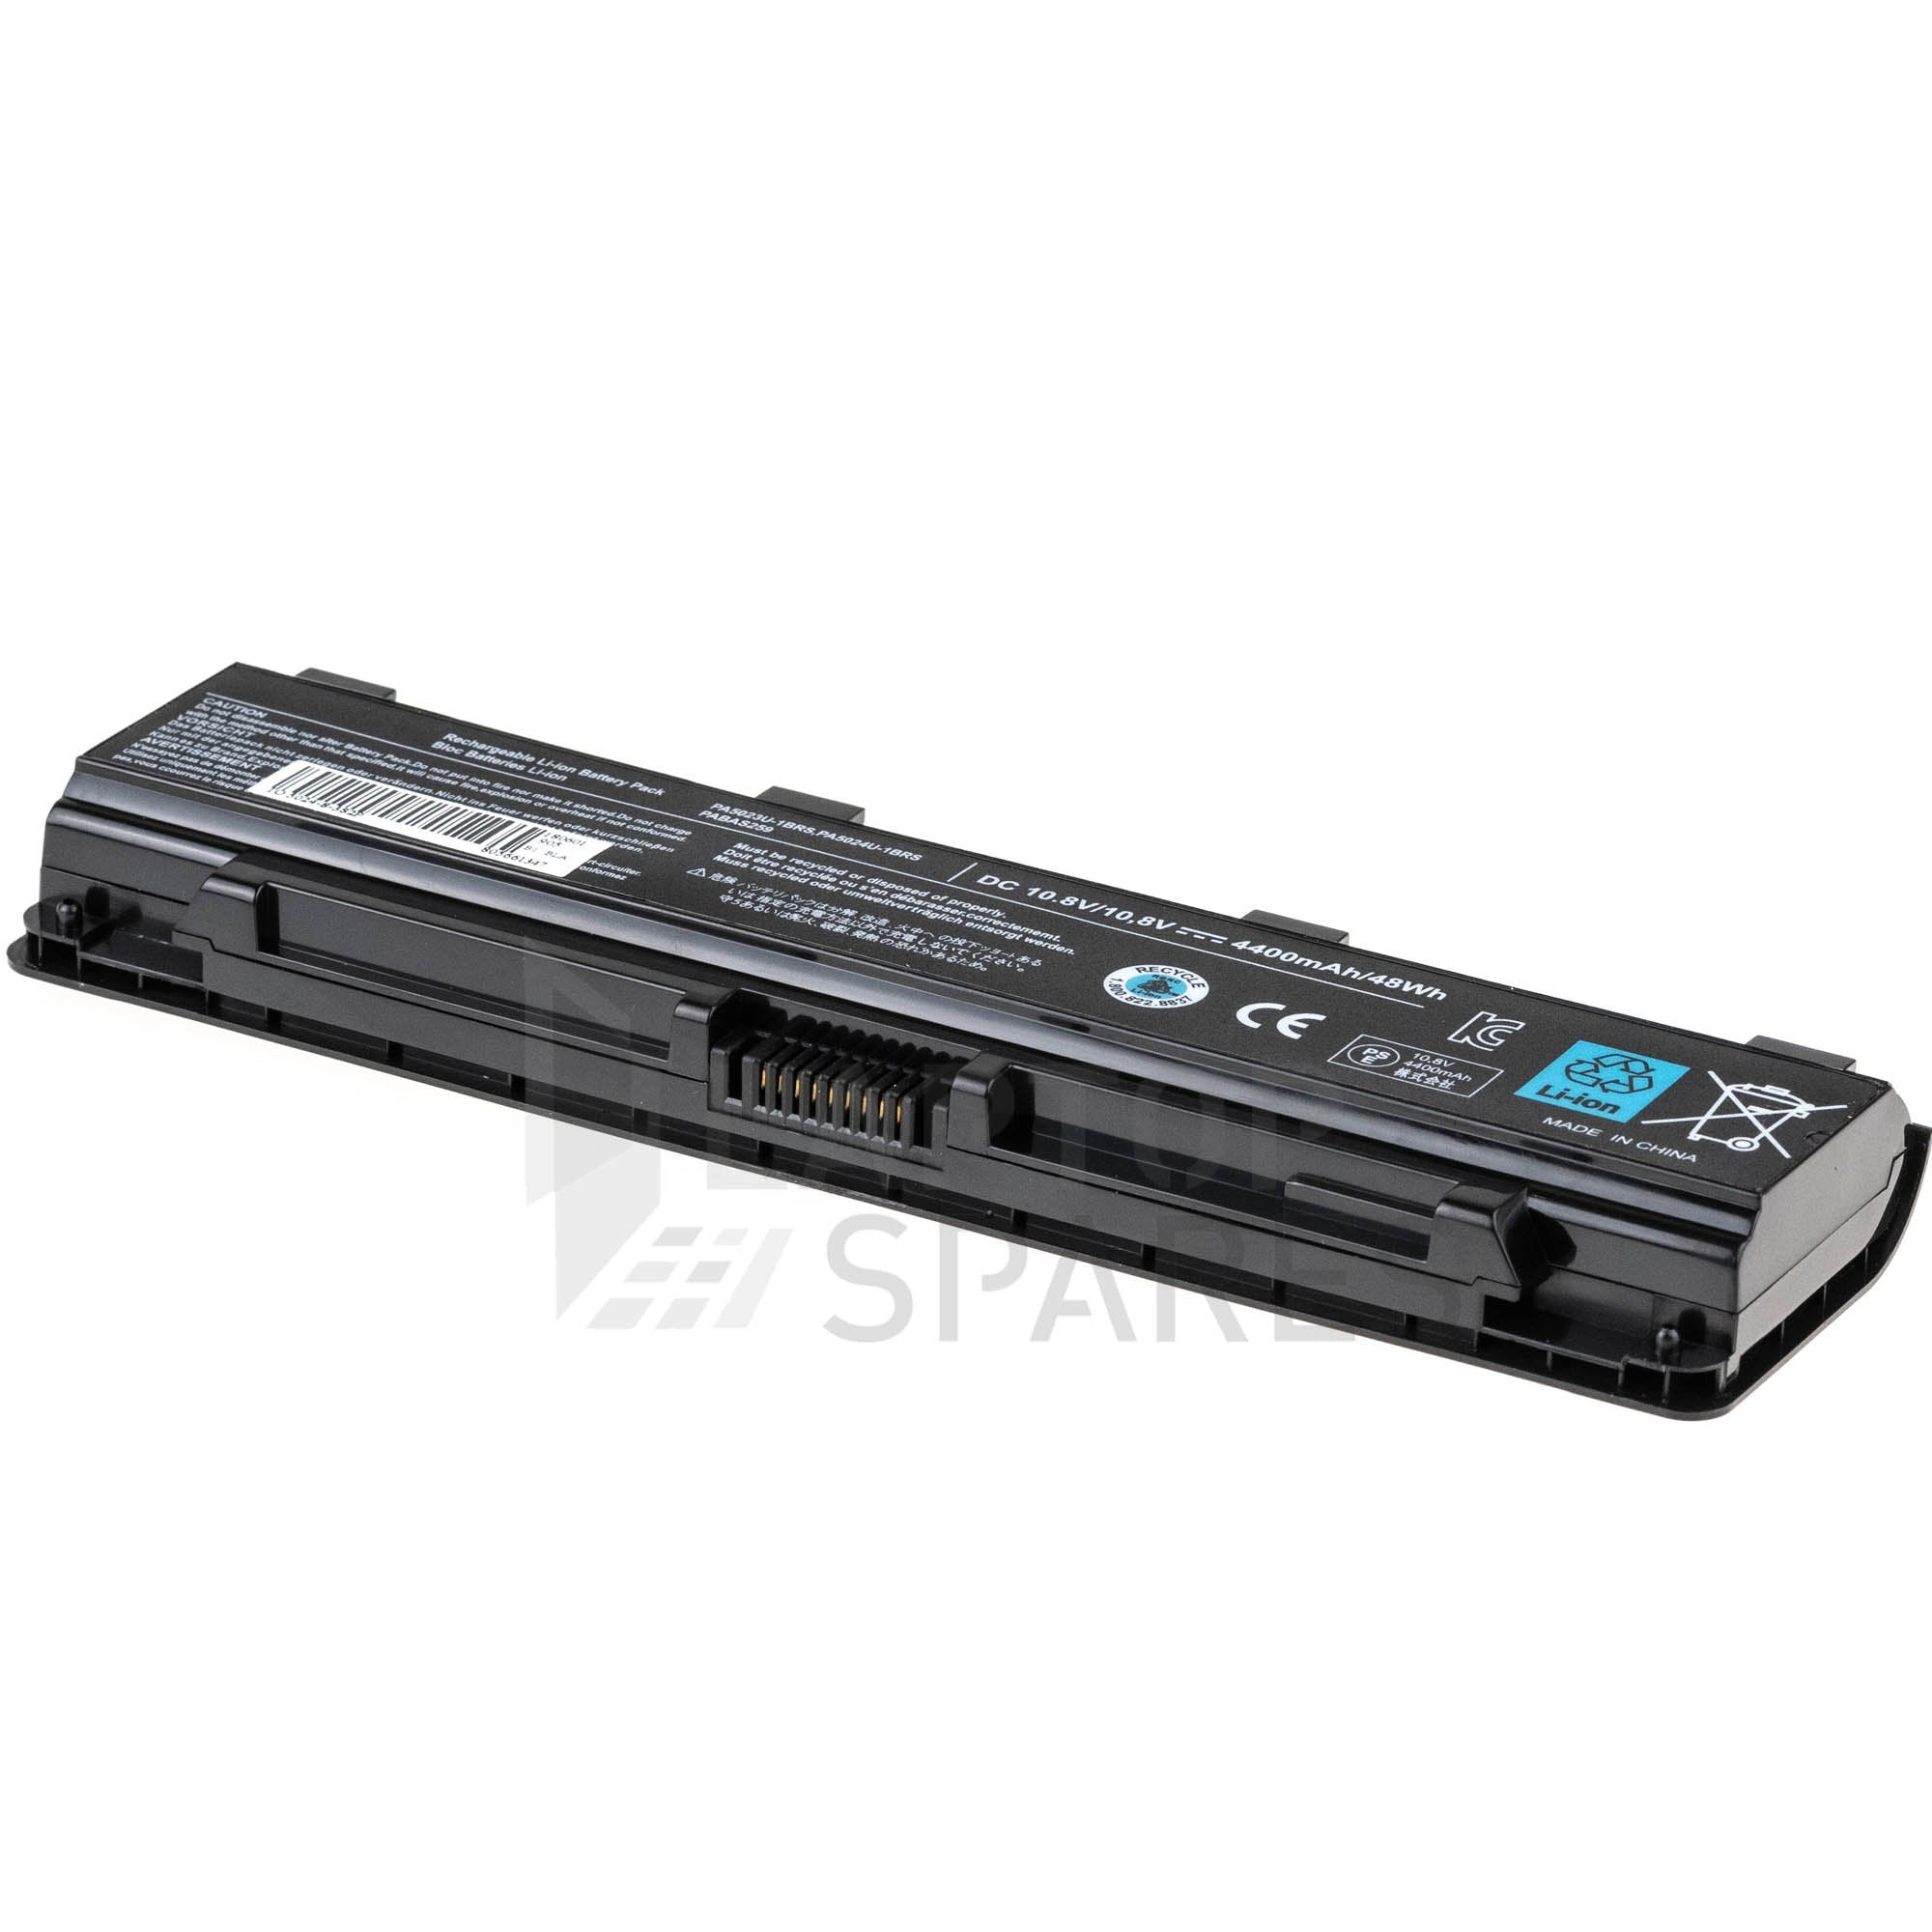 Toshiba Satellite Pro C870 Satellite Pro C870D 4400mAh 6 Cell Battery